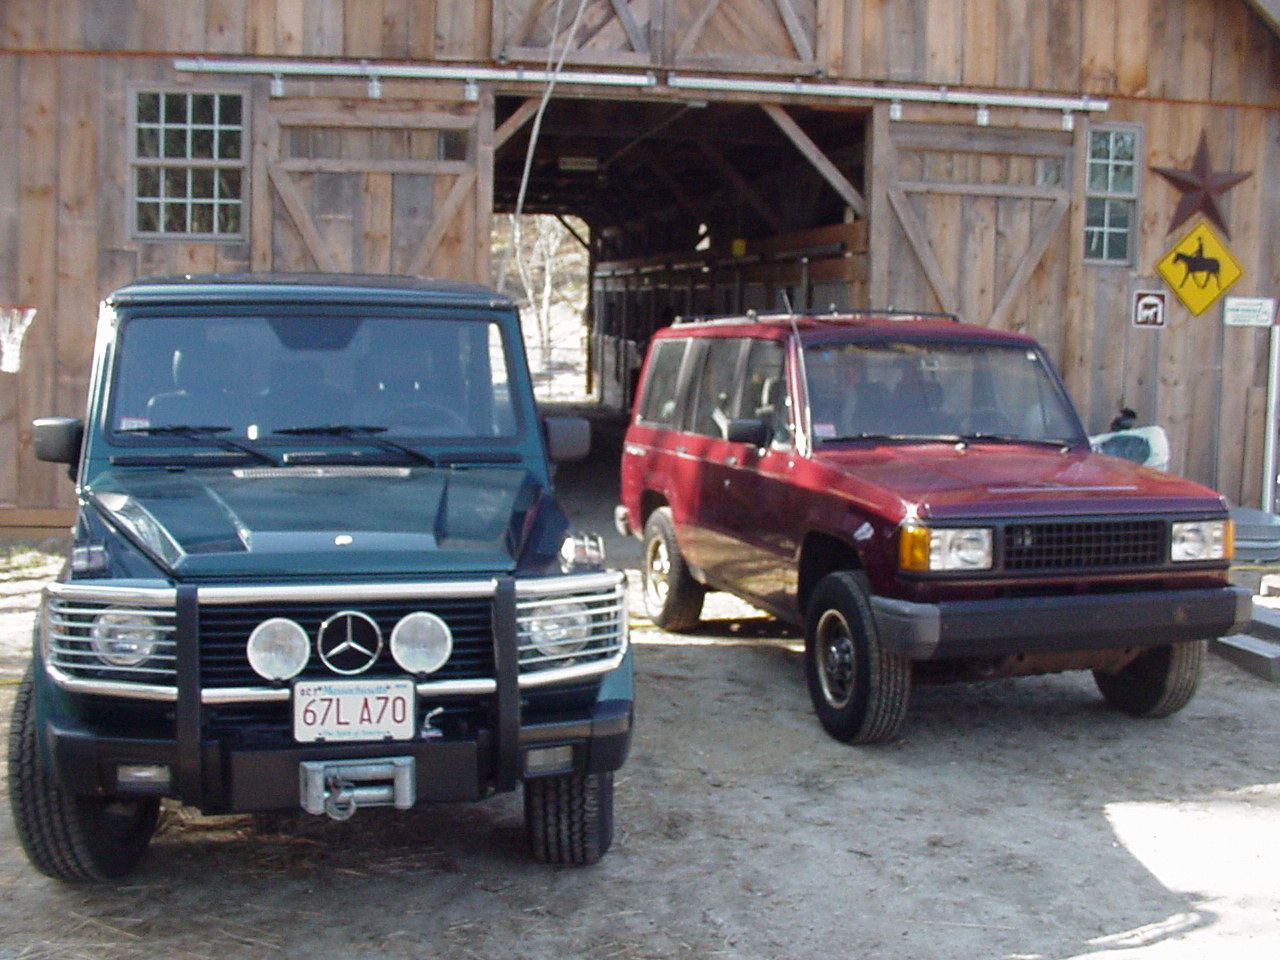 1995 G320 vs 1991 Isuzu Trooper II-mvc-885f.jpg